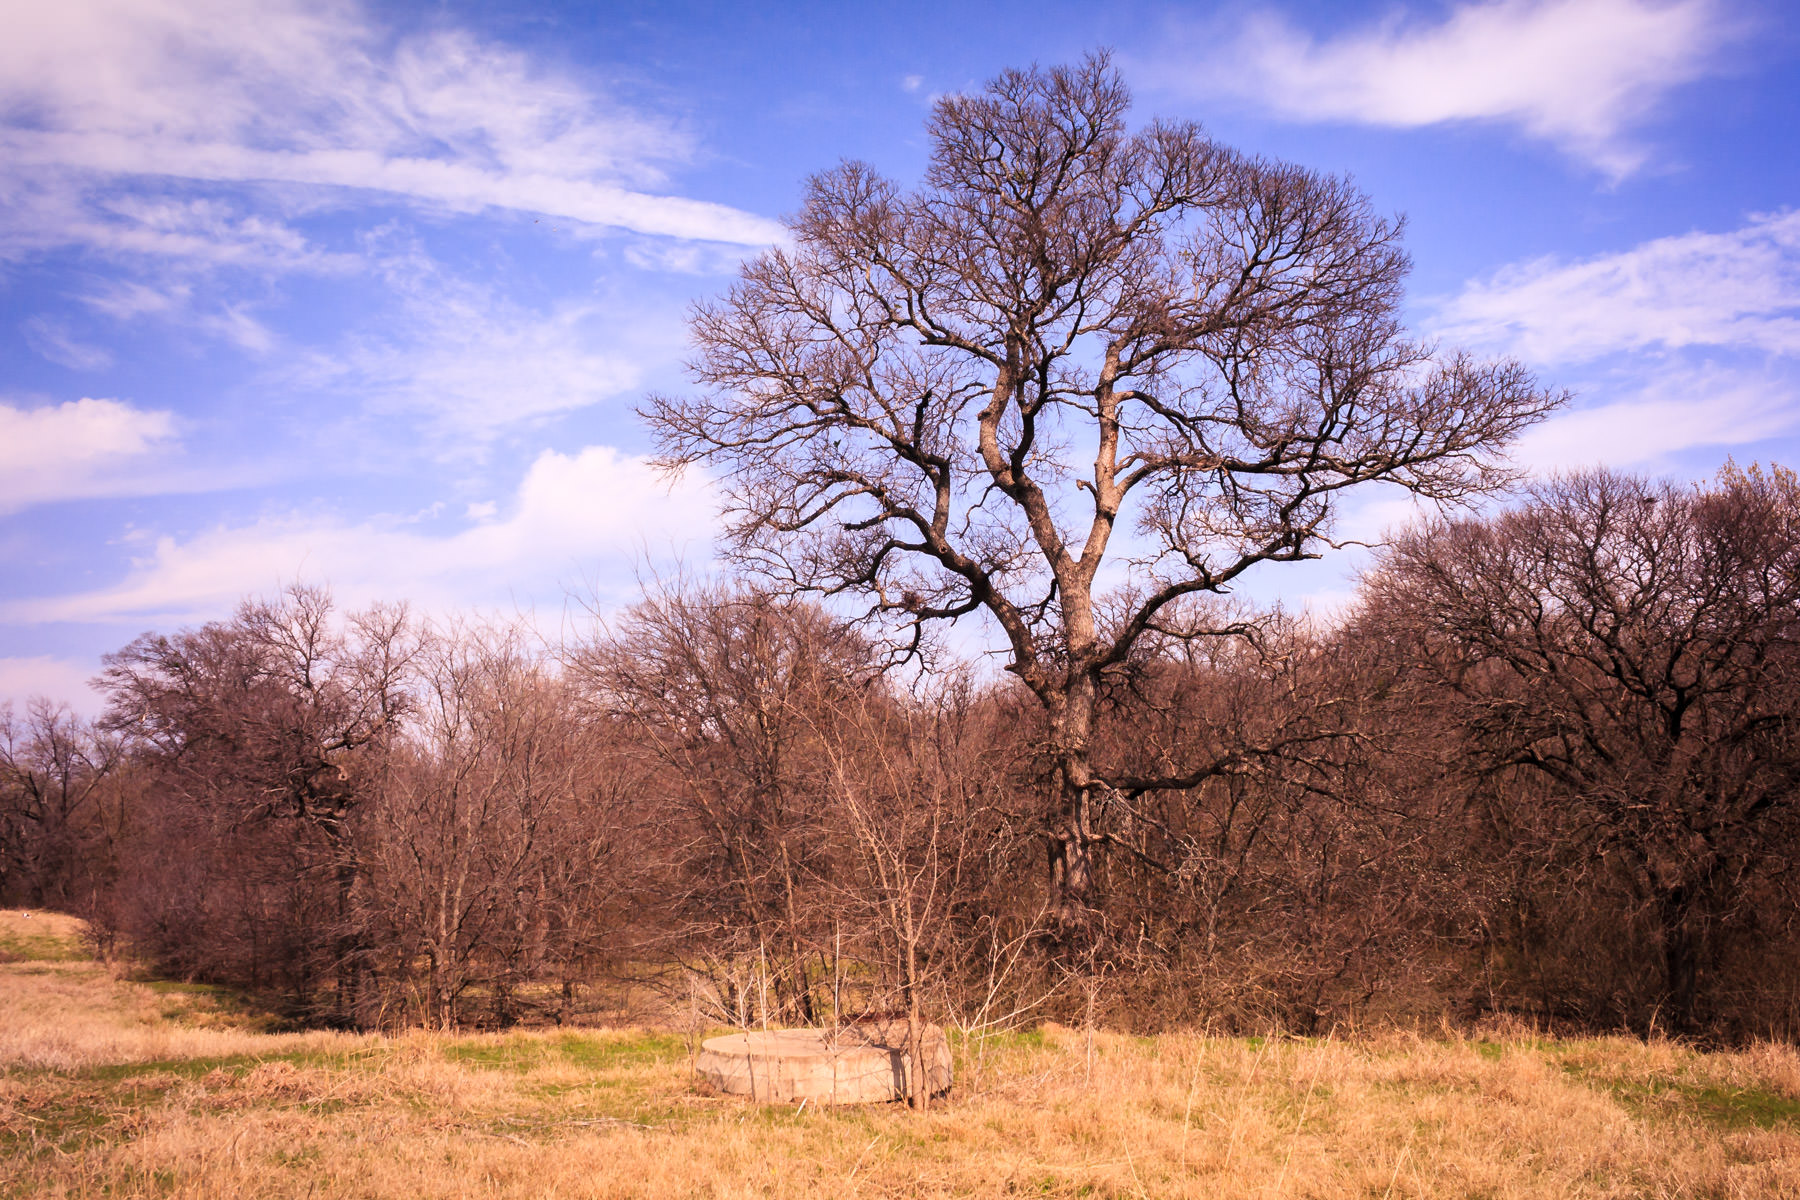 A tree at Plano, Texas' Arbor Hills Nature Preserve.